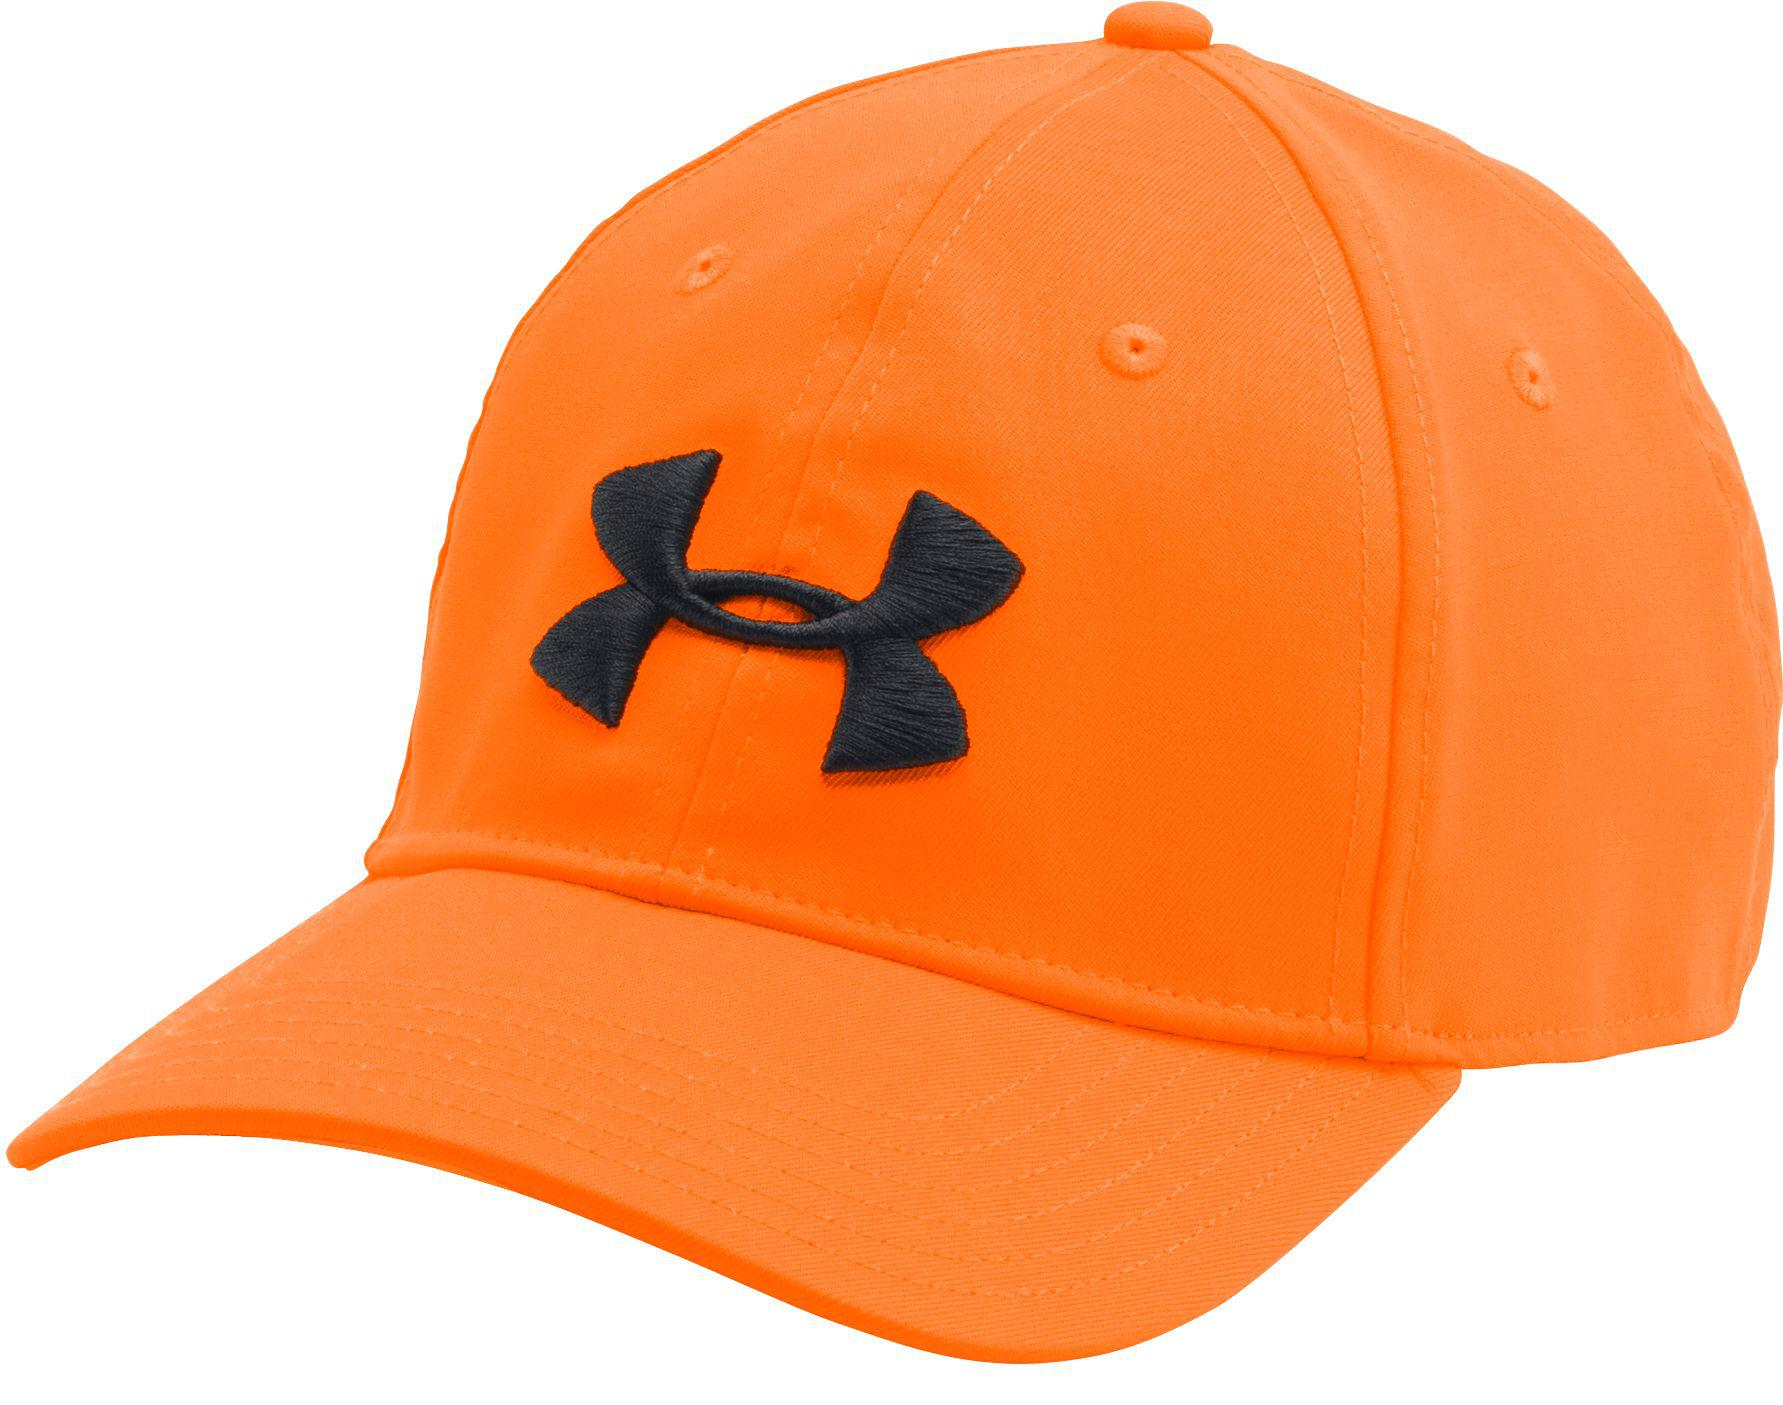 297167f2470 Lyst - Under Armour Camo 2.0 Hat in Orange for Men - Save 33%